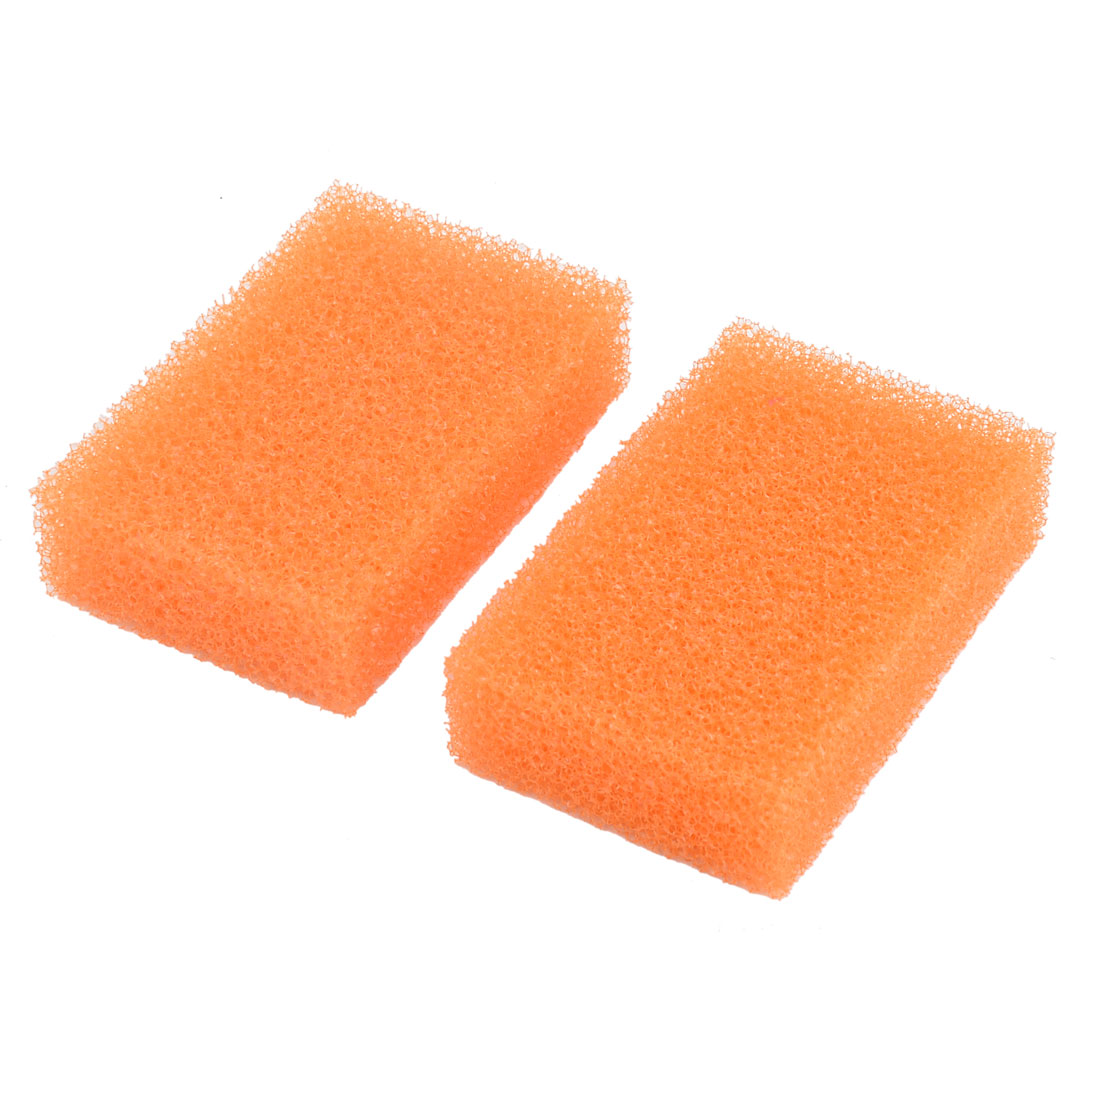 Kitchen Sponge Rectangle Bowl Plate Dishes Cleaning Scrubbing Pad Orange 2pcs